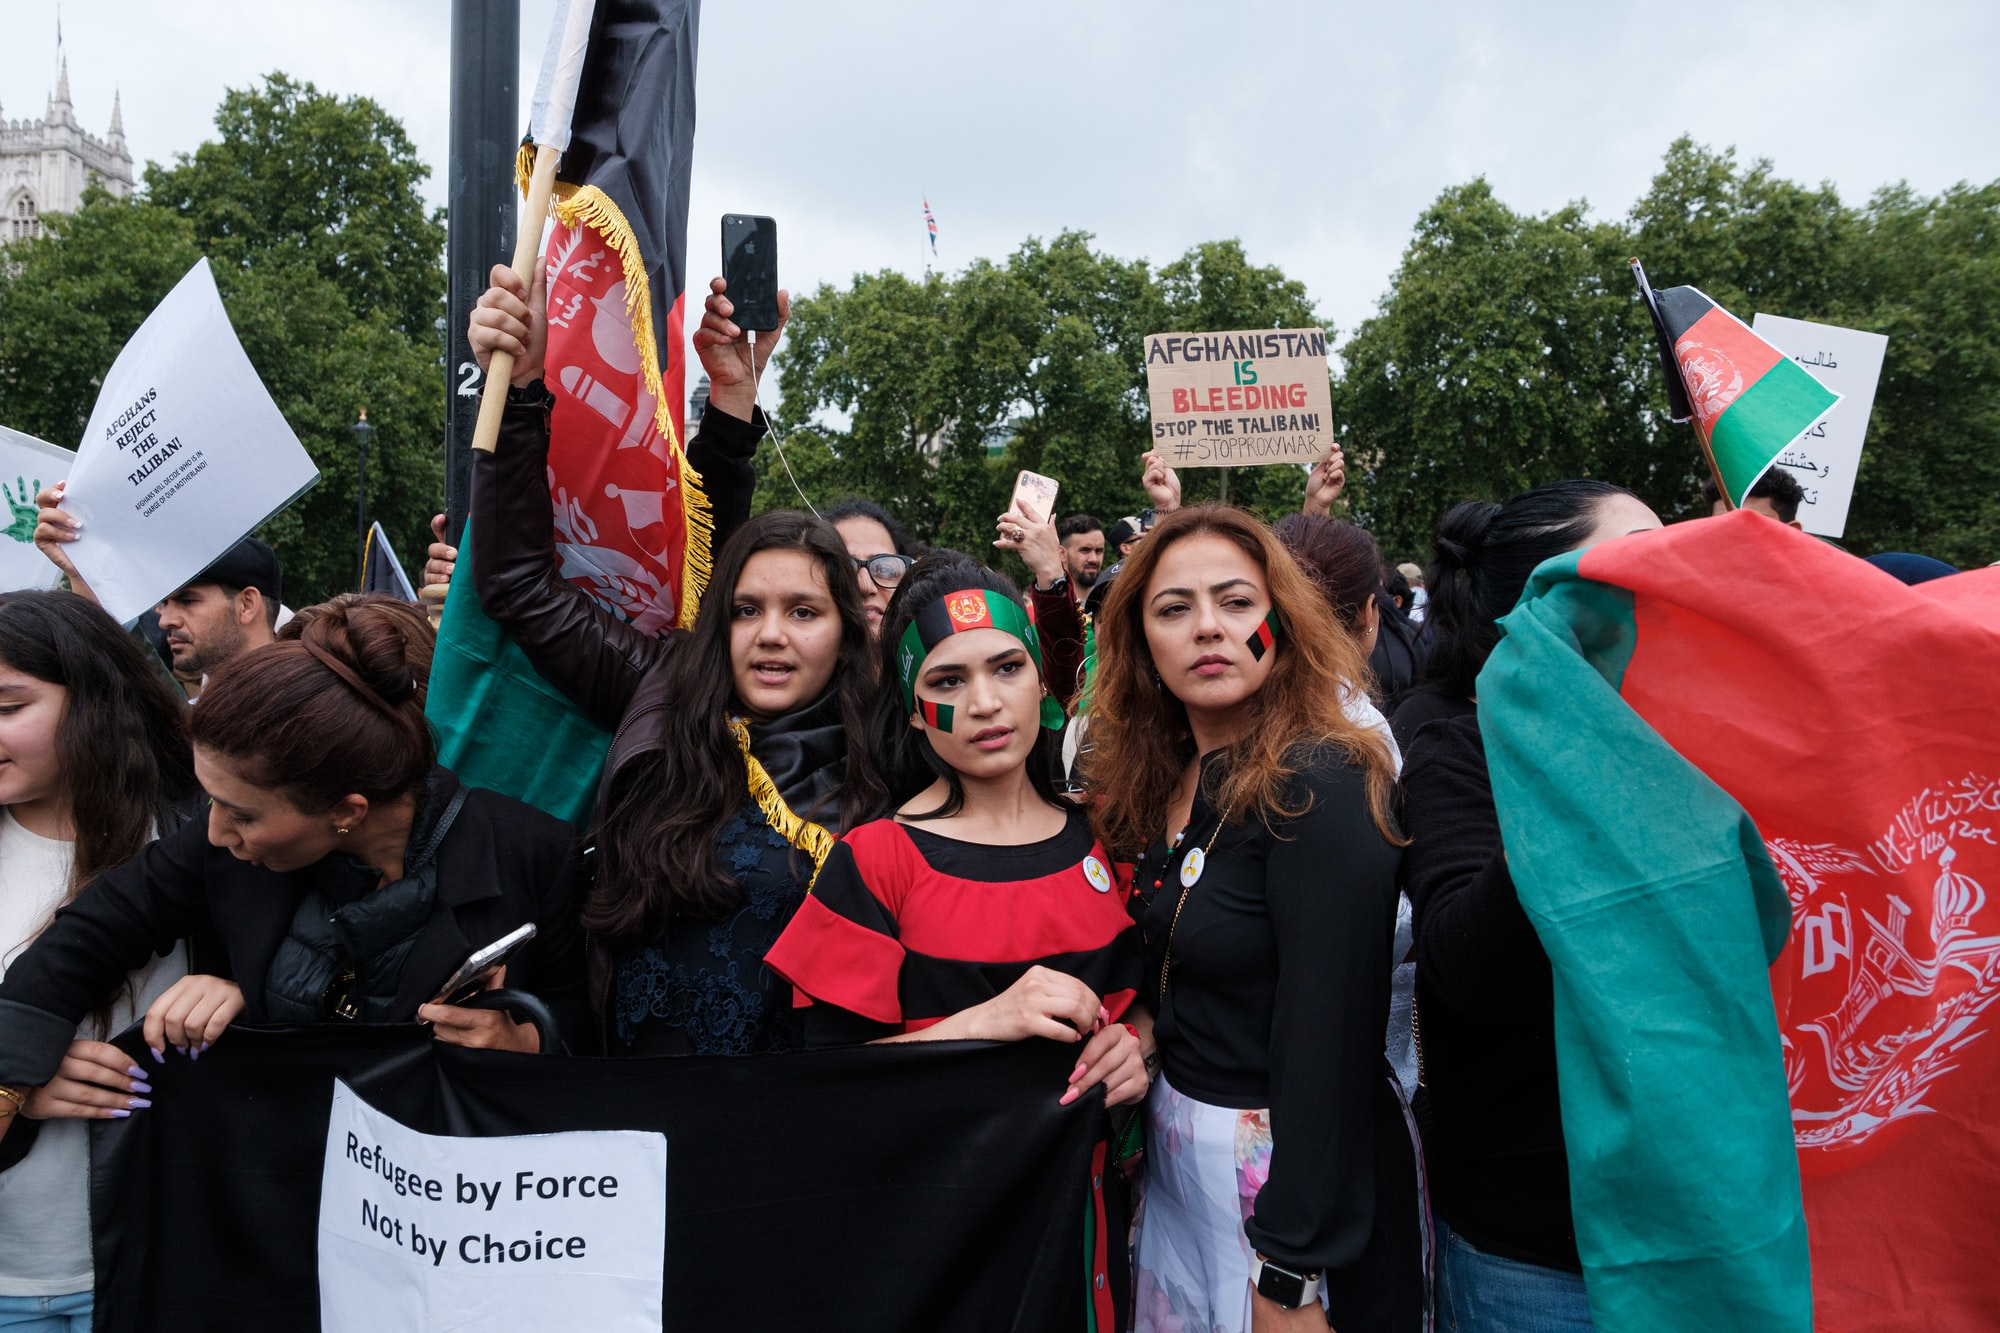 Stop Killing Afghan Protest in London